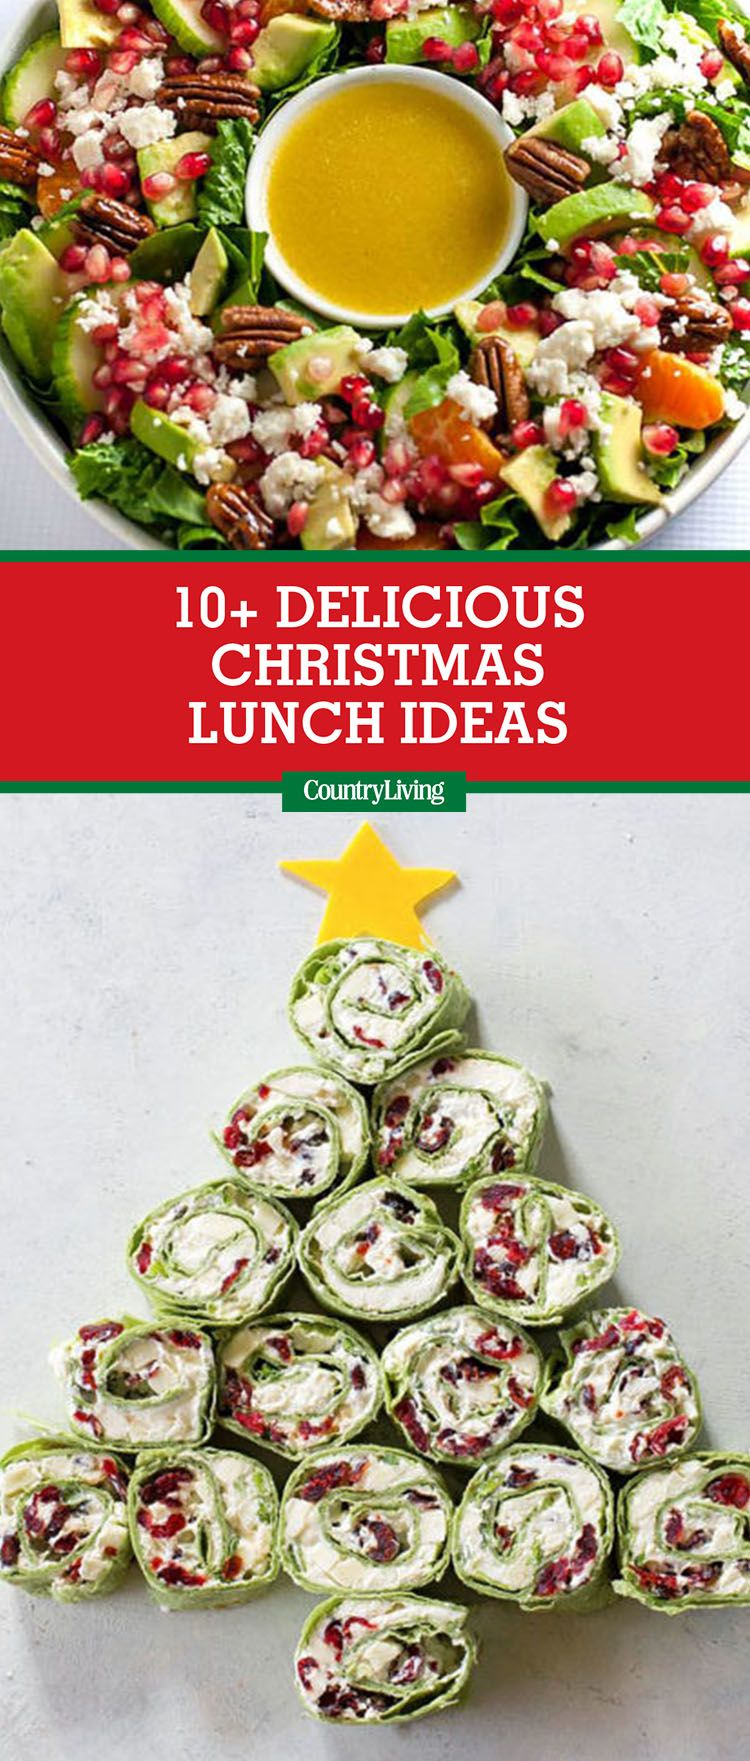 20 Delicious Christmas Lunch Ideas To Tide You Over Until